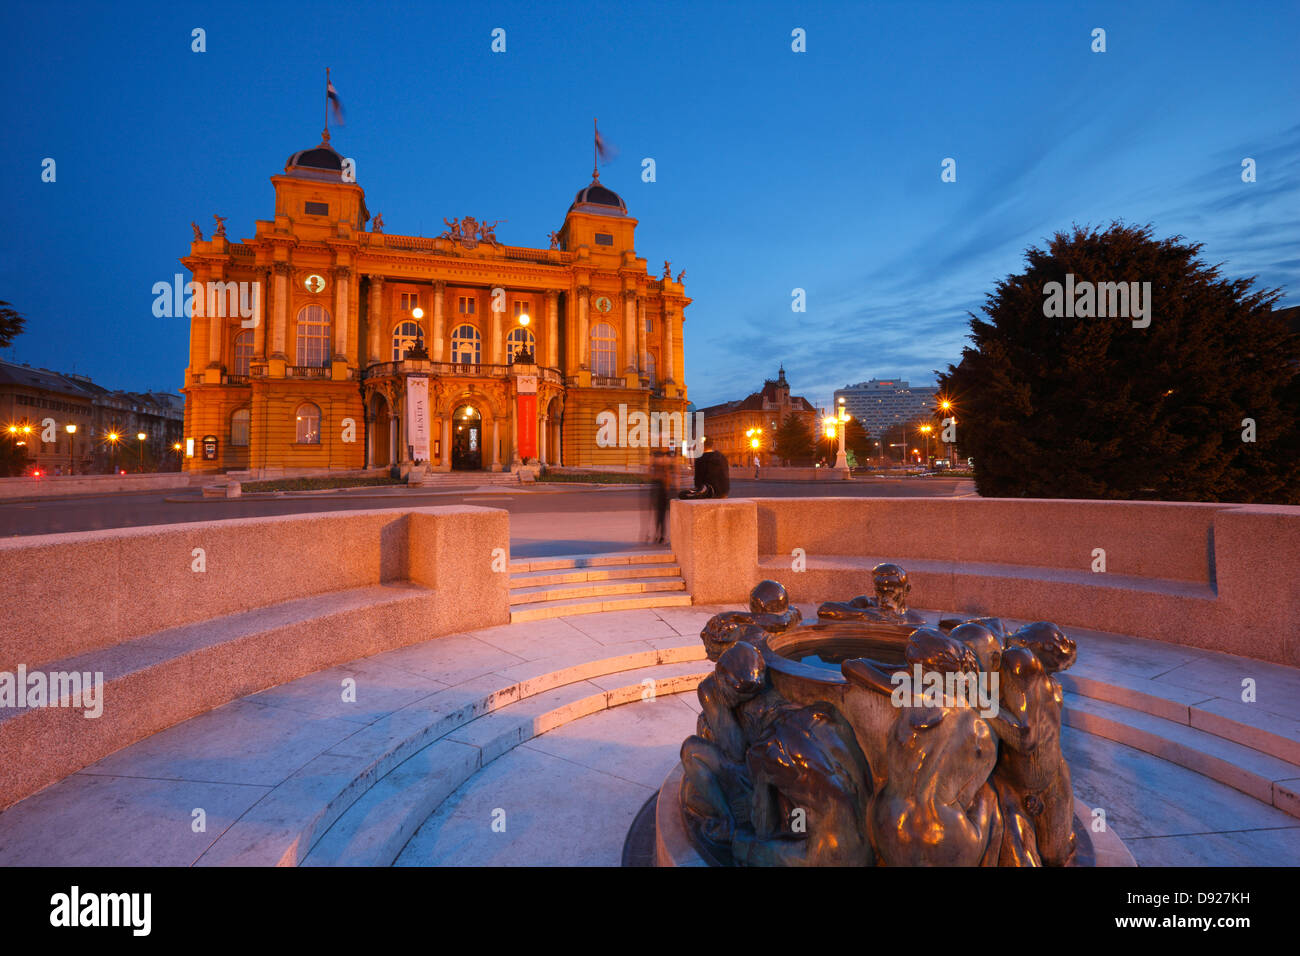 Zagreb town - Theater HNK, Sculpture, Ivan Mestrovic's Sculpture Fountain of Life - Stock Image